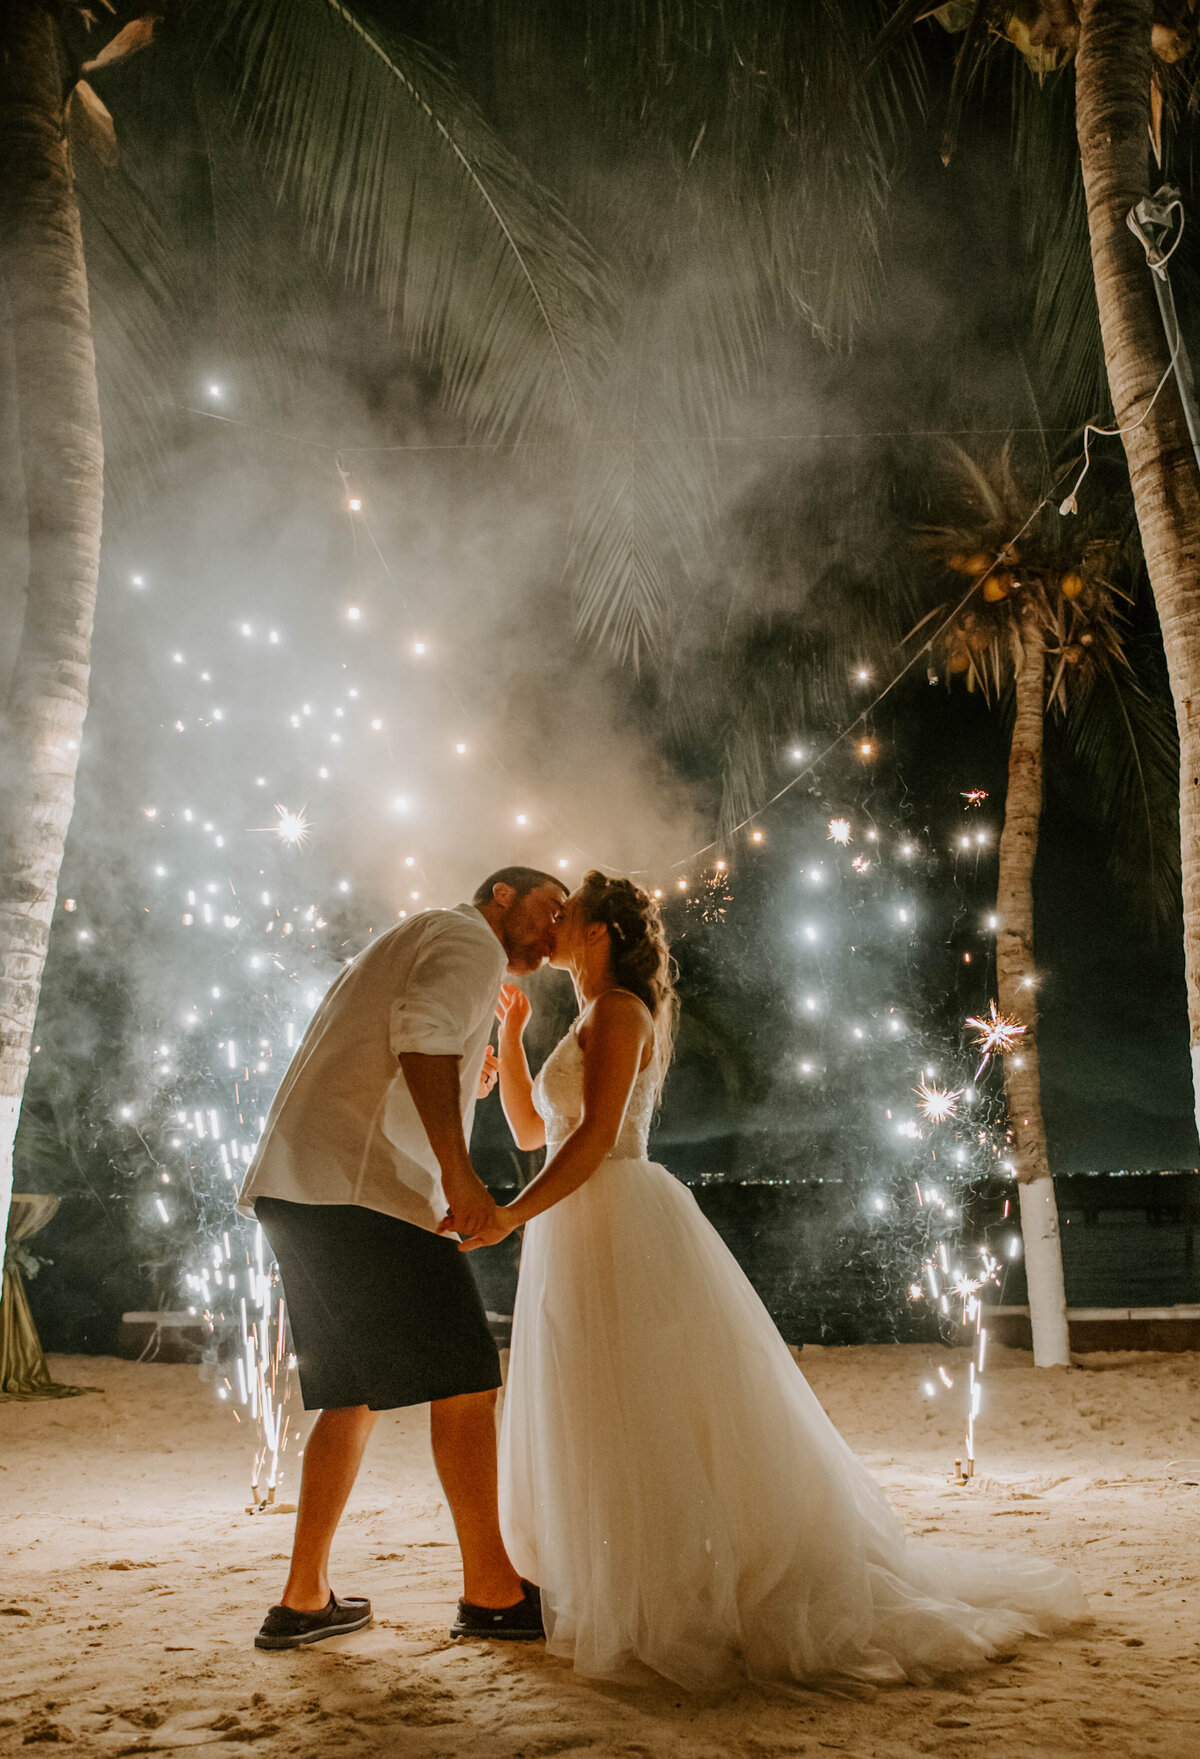 isla-mujeres-wedding-photographer-guthrie-zama-mexico-tulum-cancun-beach-destination-1826